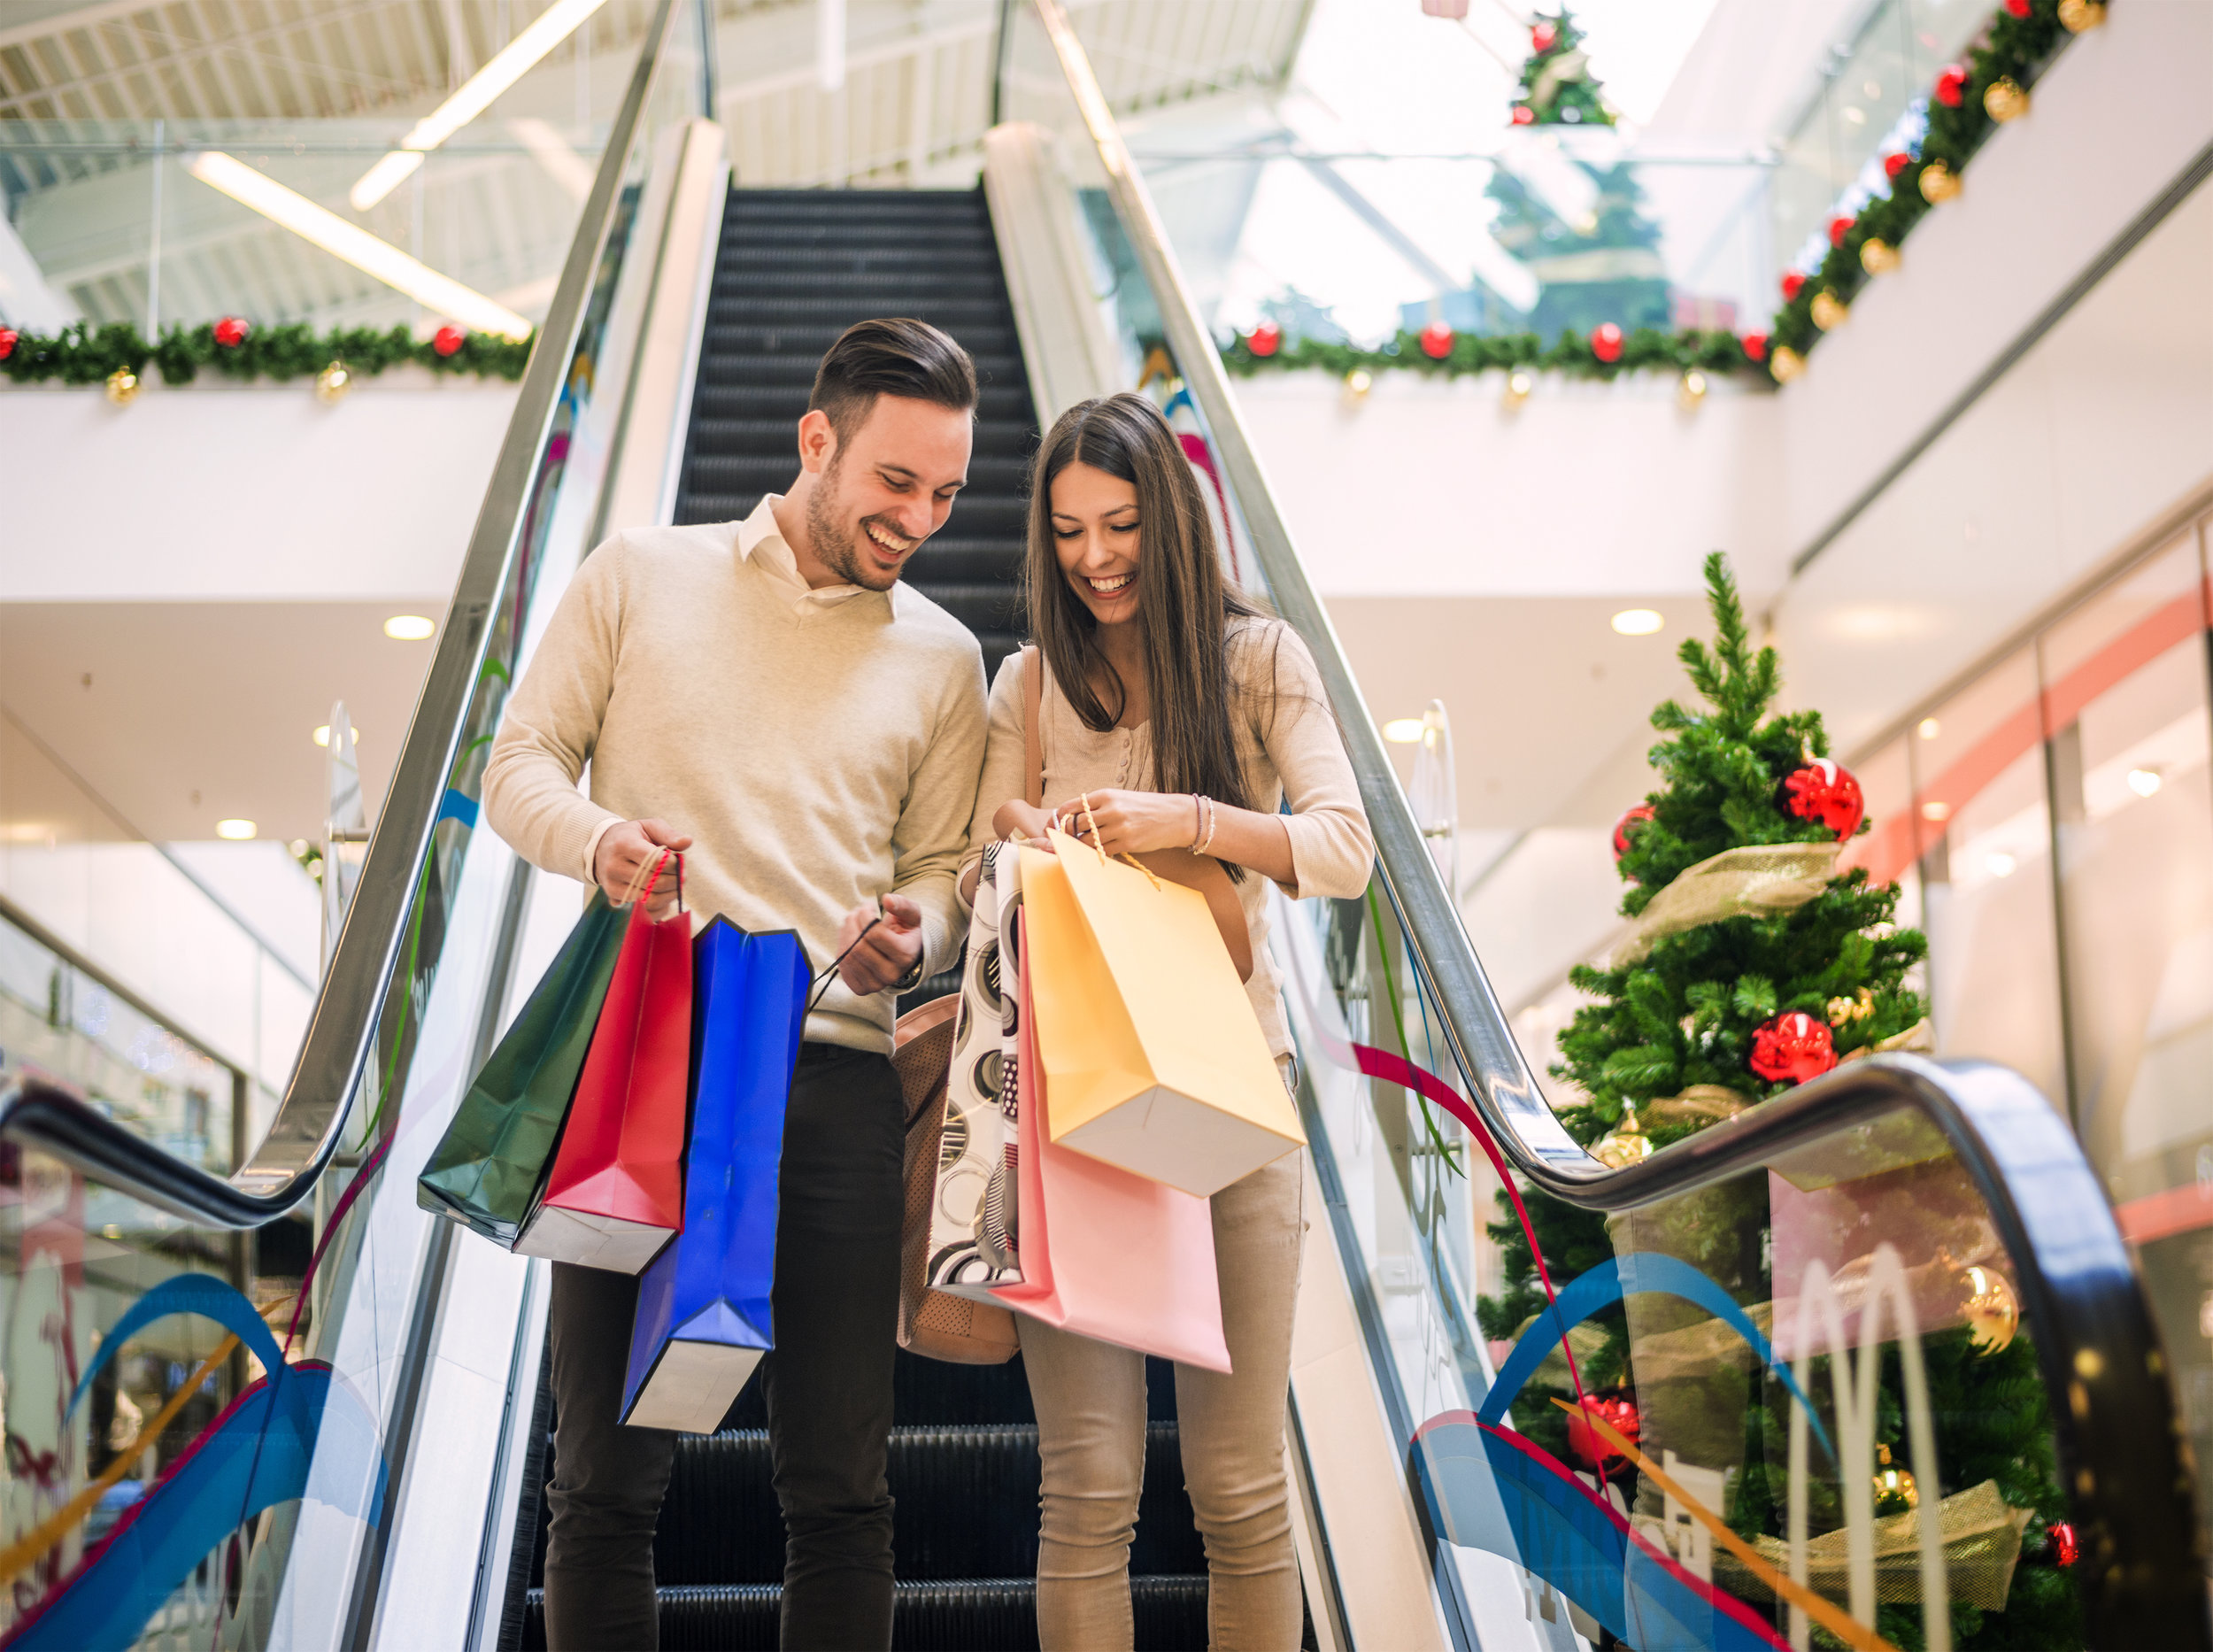 Holiday Fulfillment and Shopping: 10 Interesting Facts